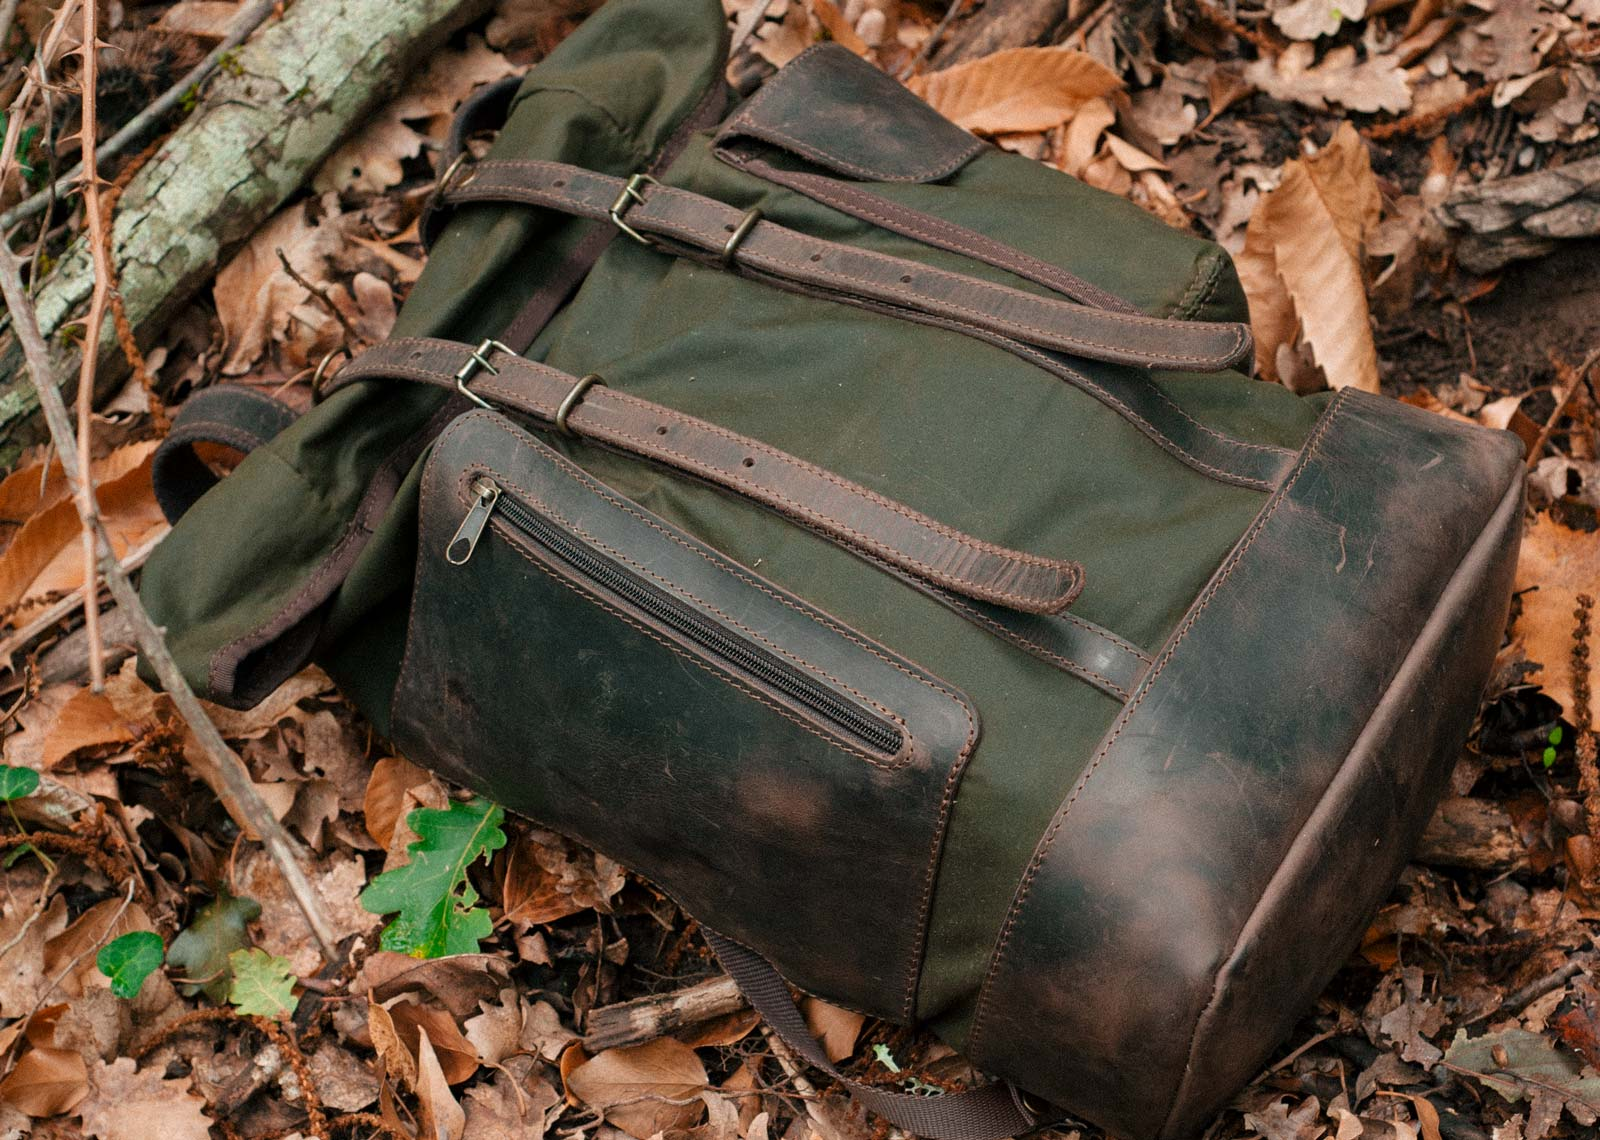 Wilderness Backpack Green in The Woods